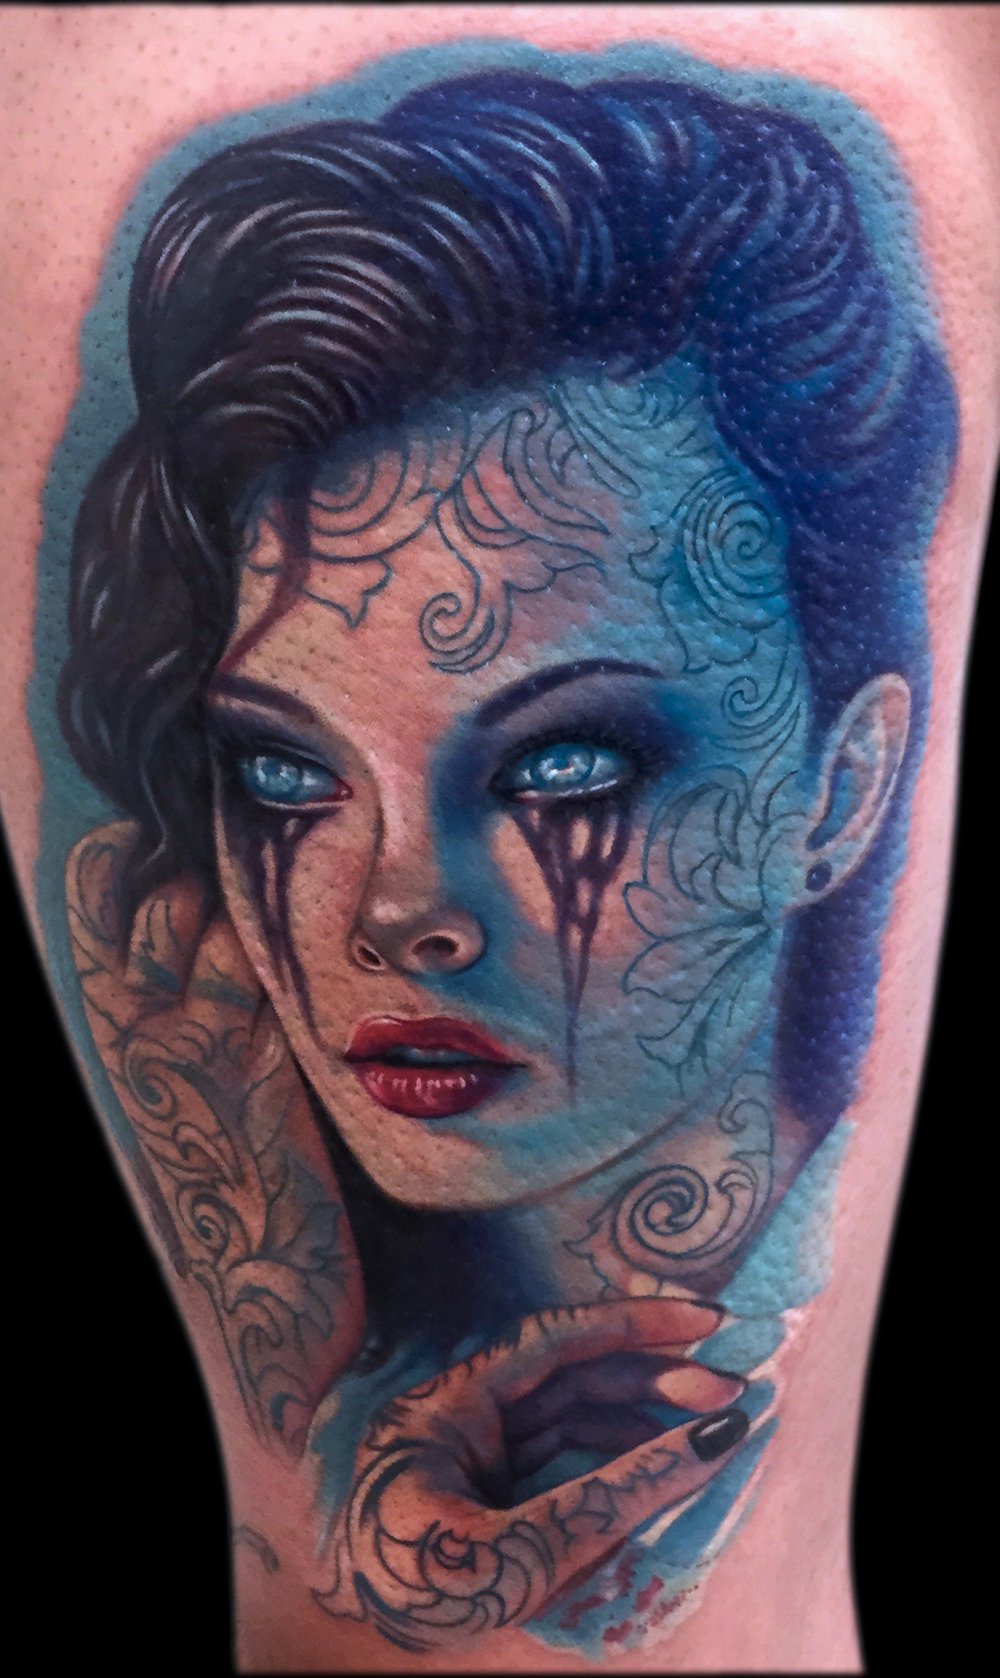 LCT Portrait Girl Blue Tattoos Face.jpg